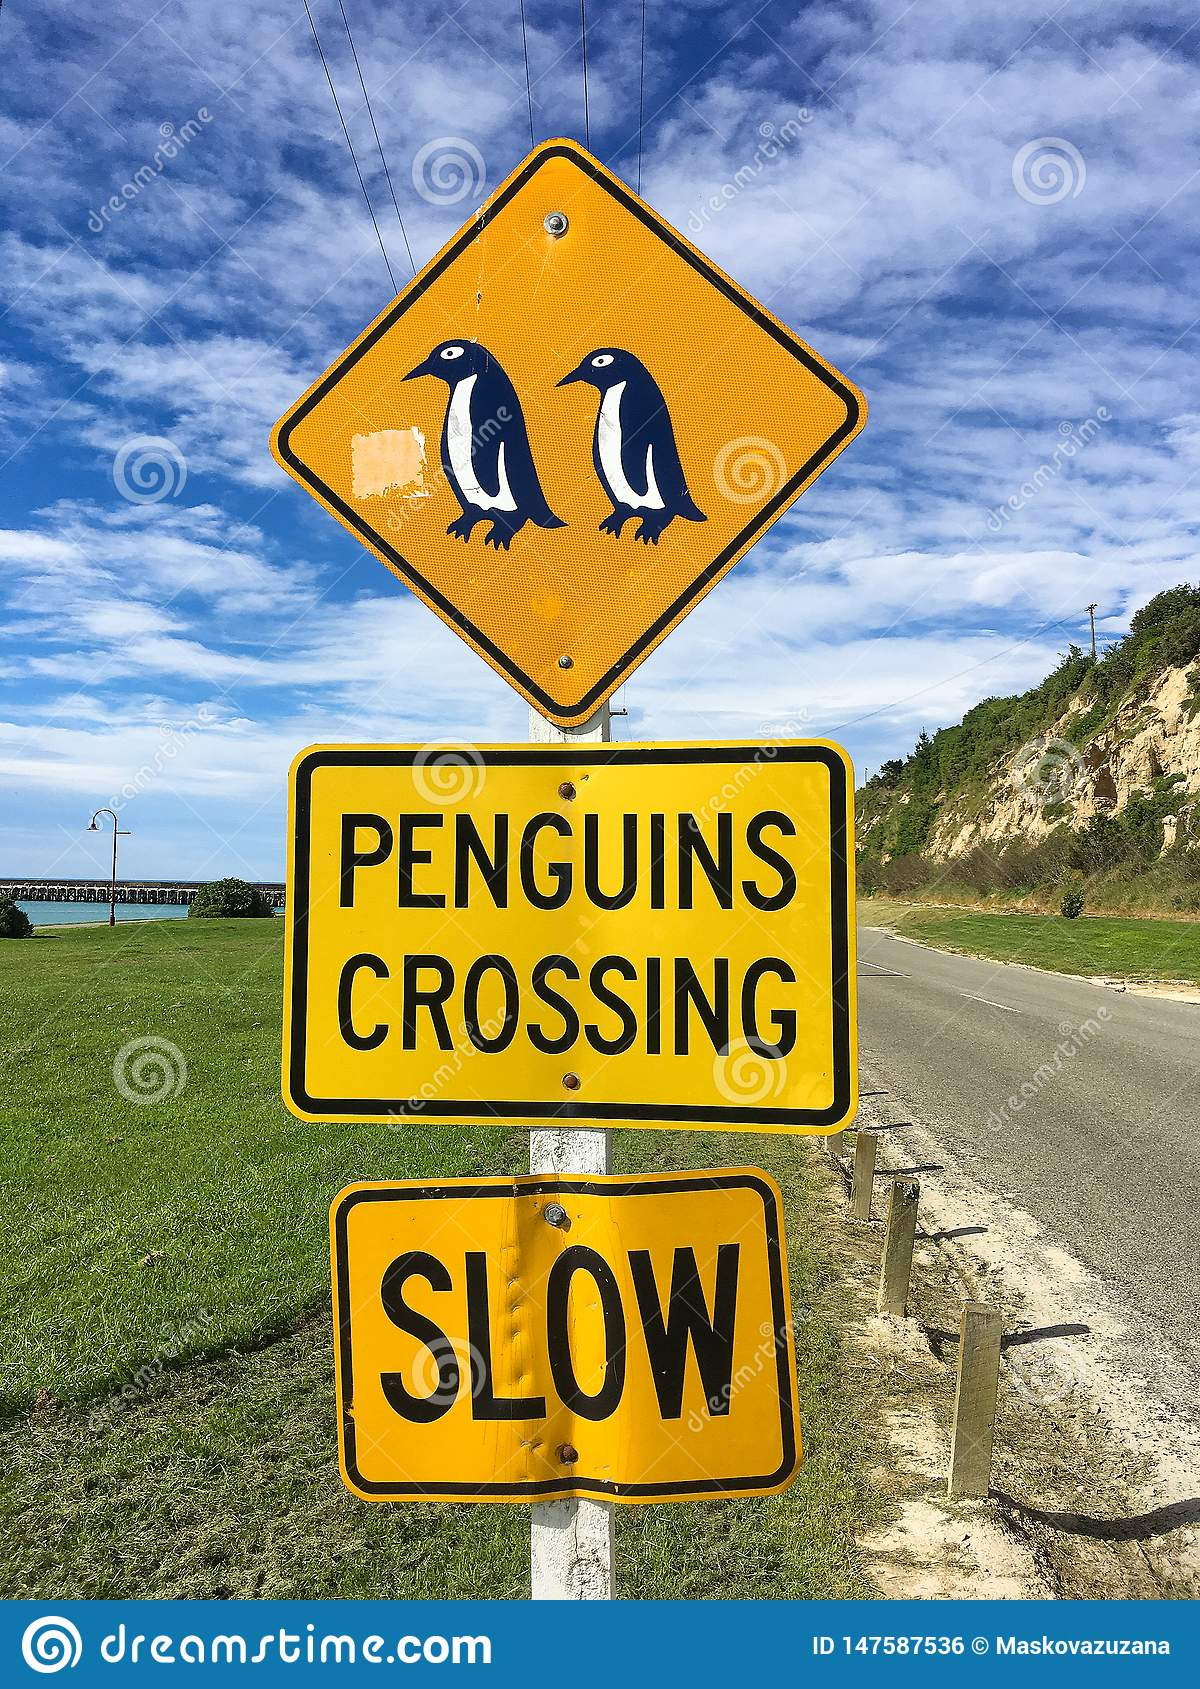 Penguins crossing. Slow down